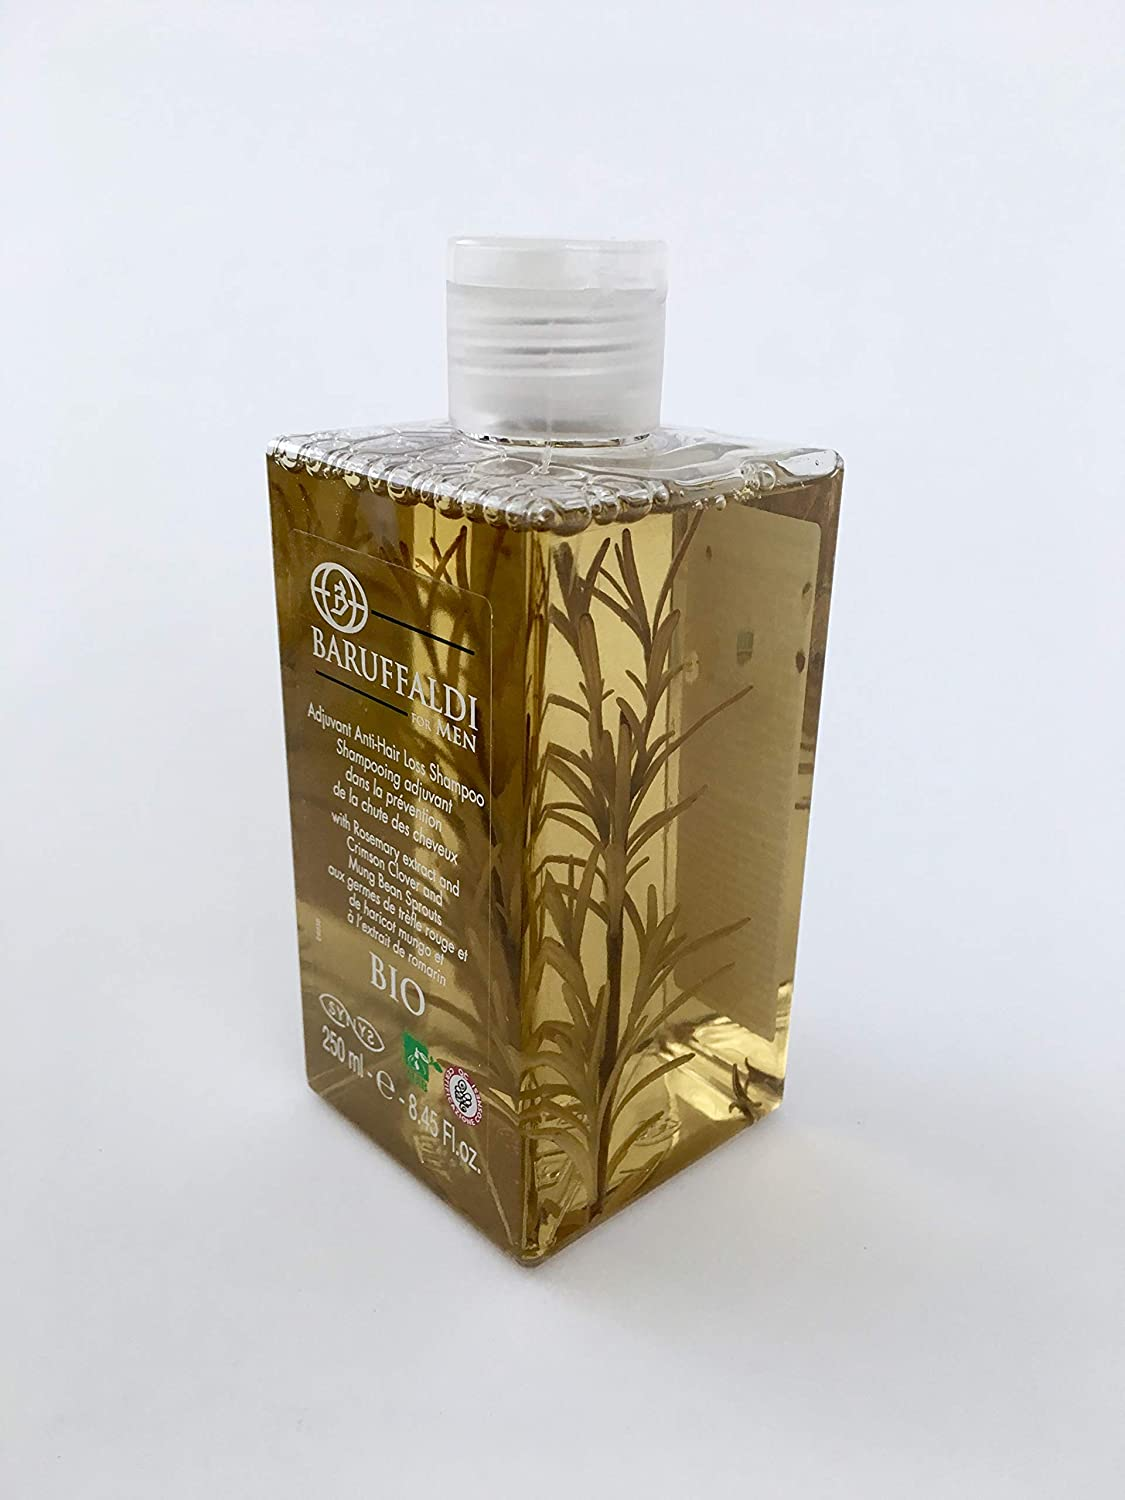 Champú Coadyuvante Anticaída de Cabello BIO con Extracto de Romero 250 ml - BaruffaldiBio for Men Made in Italy: Amazon.es: Salud y cuidado personal